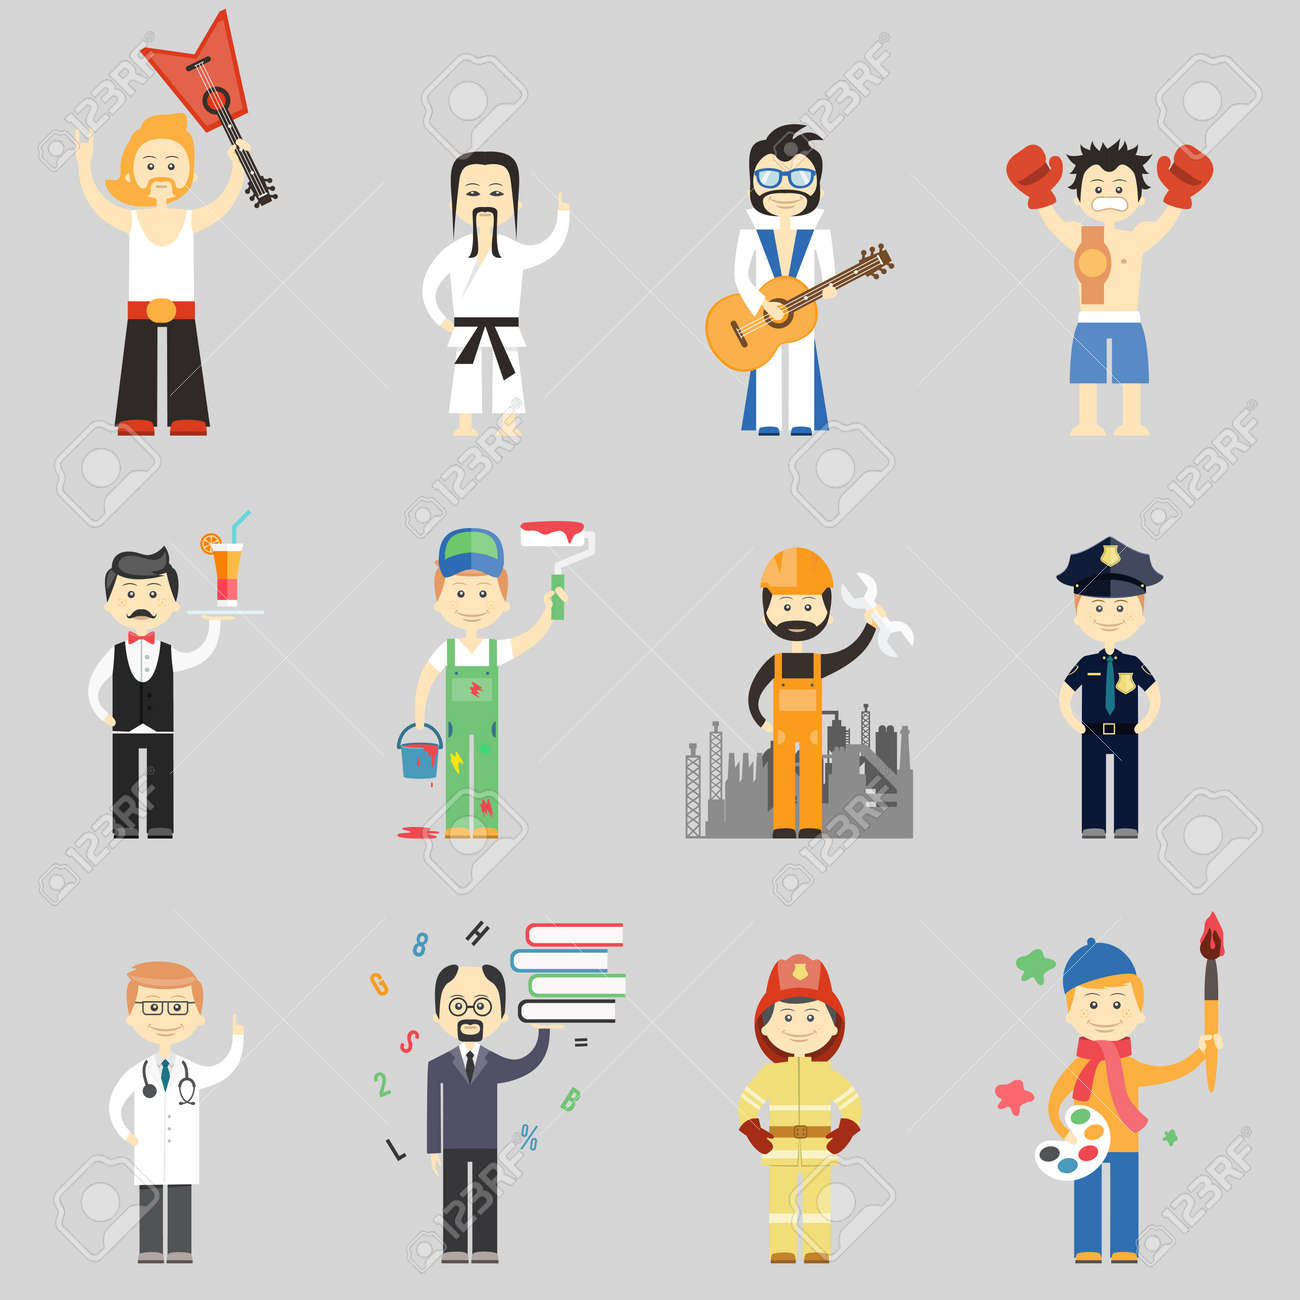 Set of vector characters in different professions including martial arts musicians waiter painter construction worker policeman doctor professor fireman and artist - 166779429